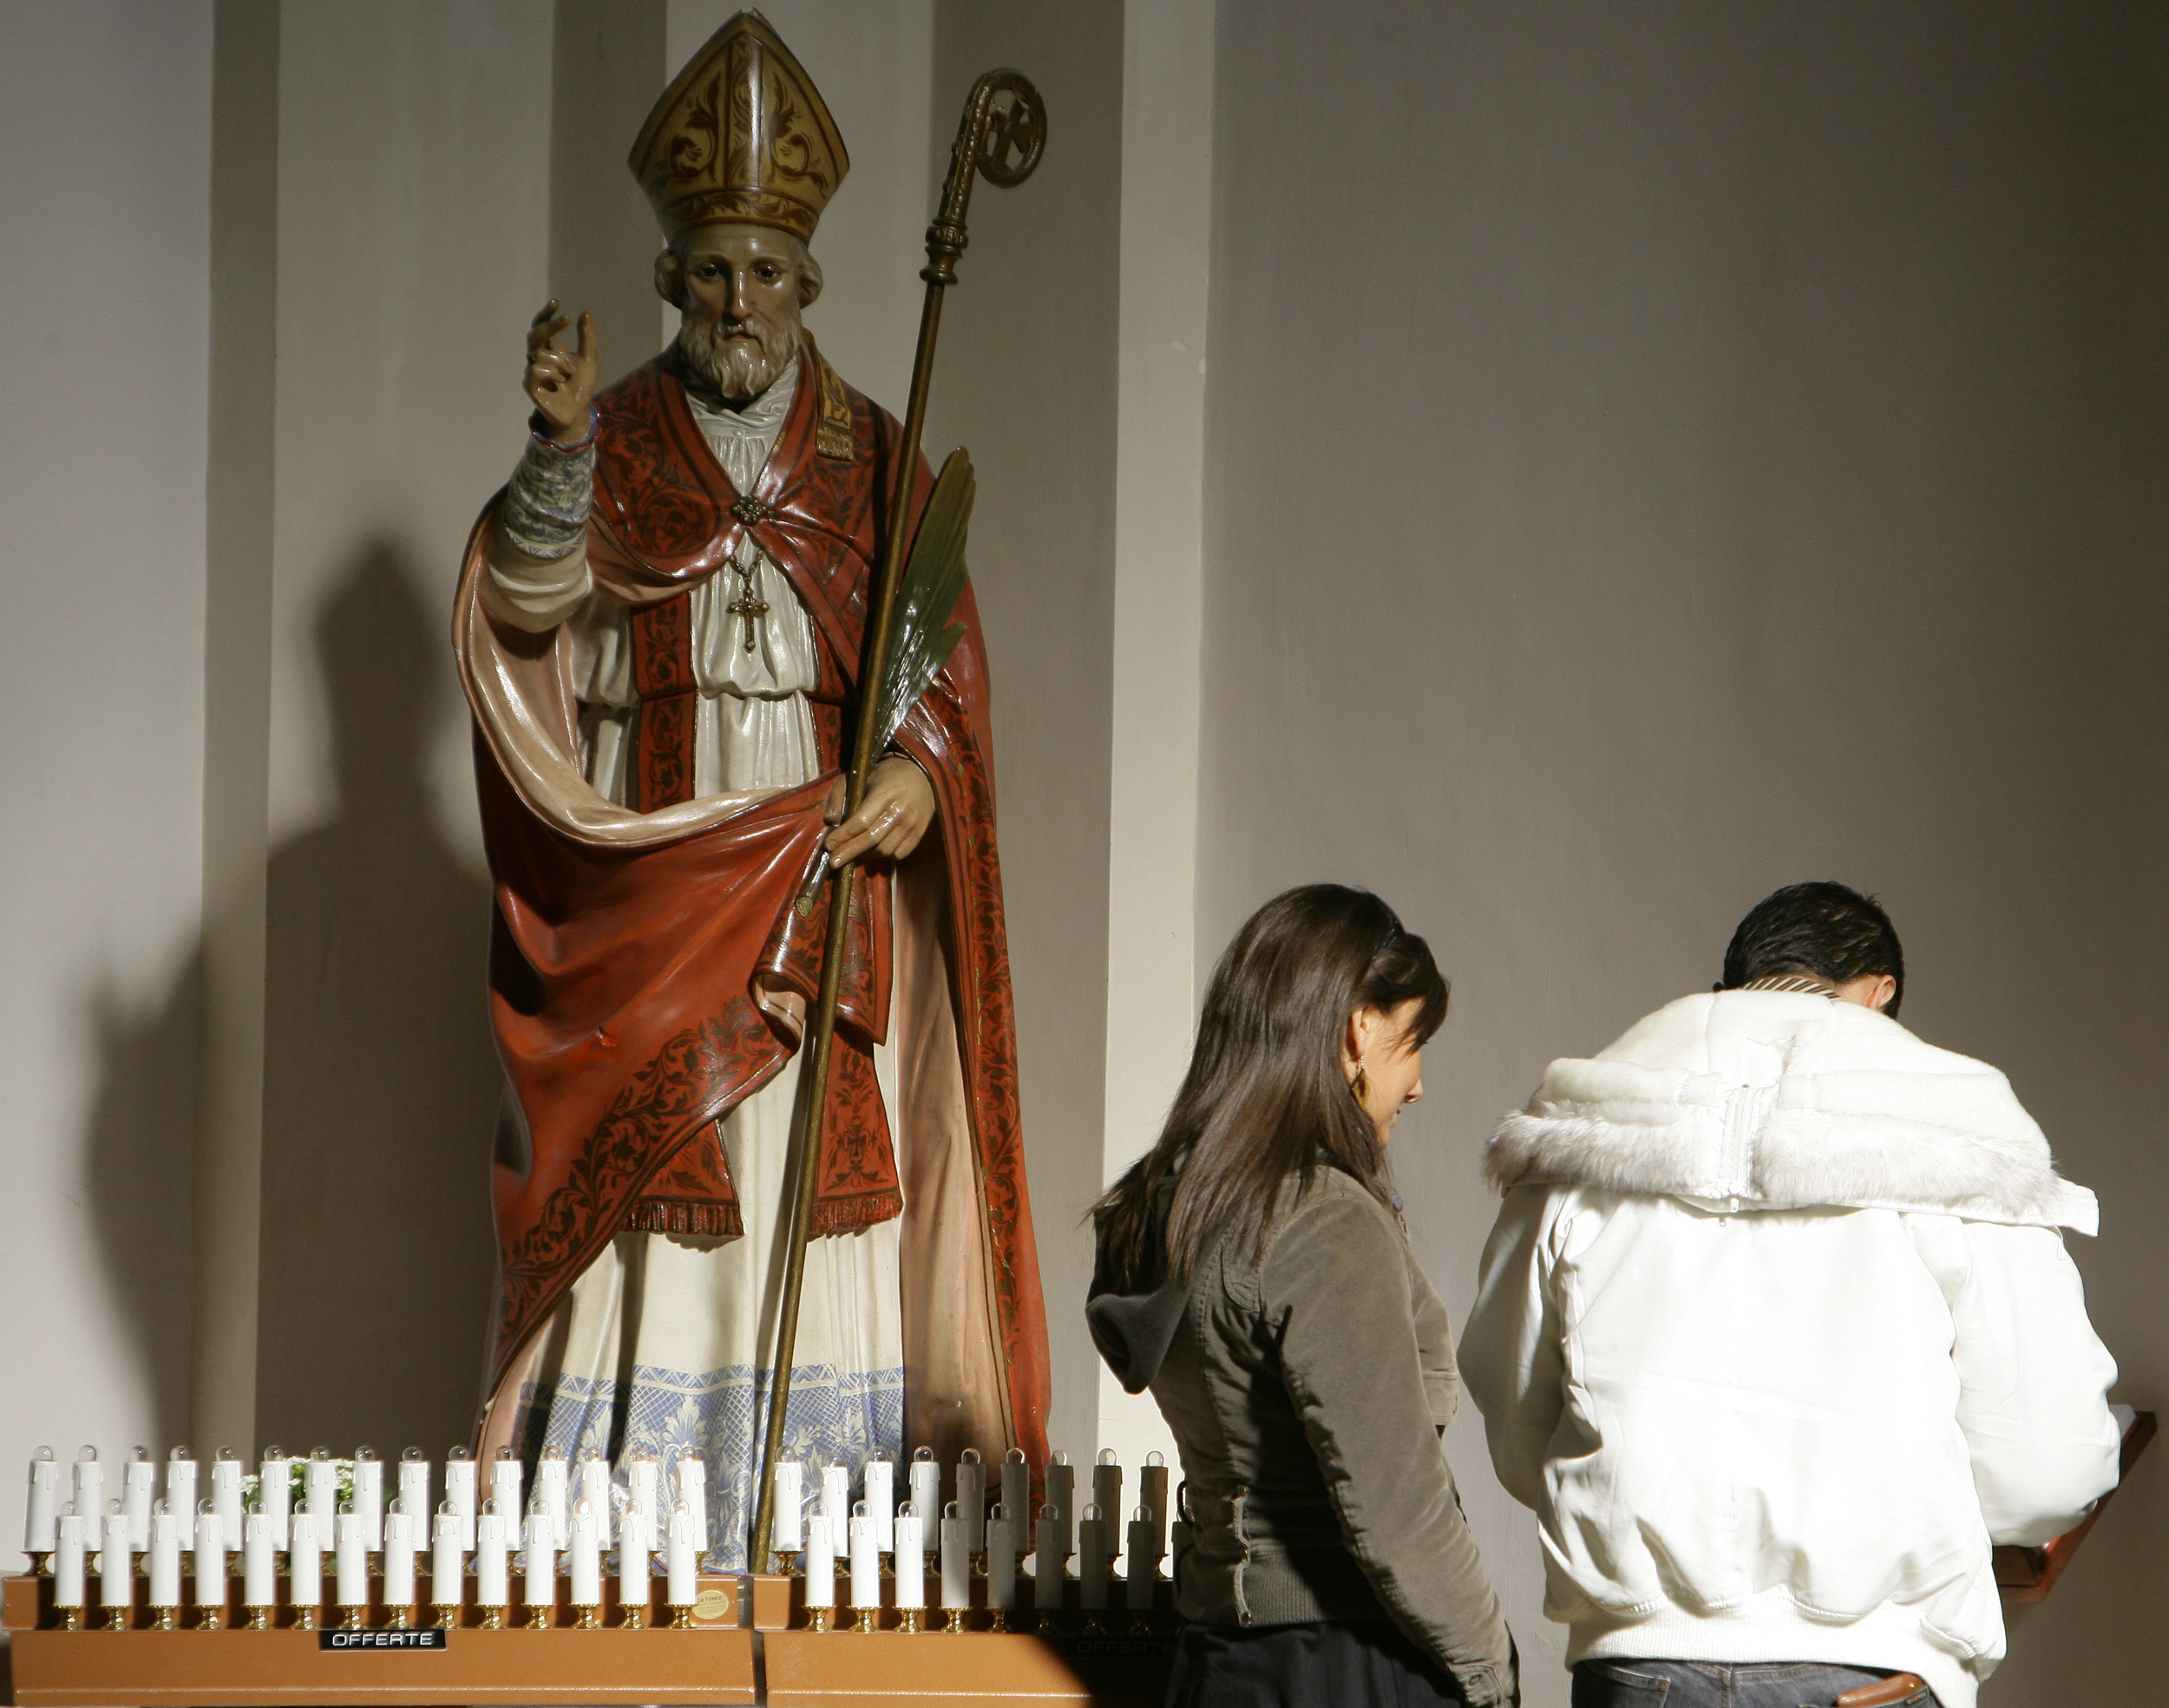 A couple stands in front of the St.Valentine's statue inside the St. Valentine Basilica in Terni, Umbria, February 10, 2008. REUTERS/Daniele La Monaca (ITALY)